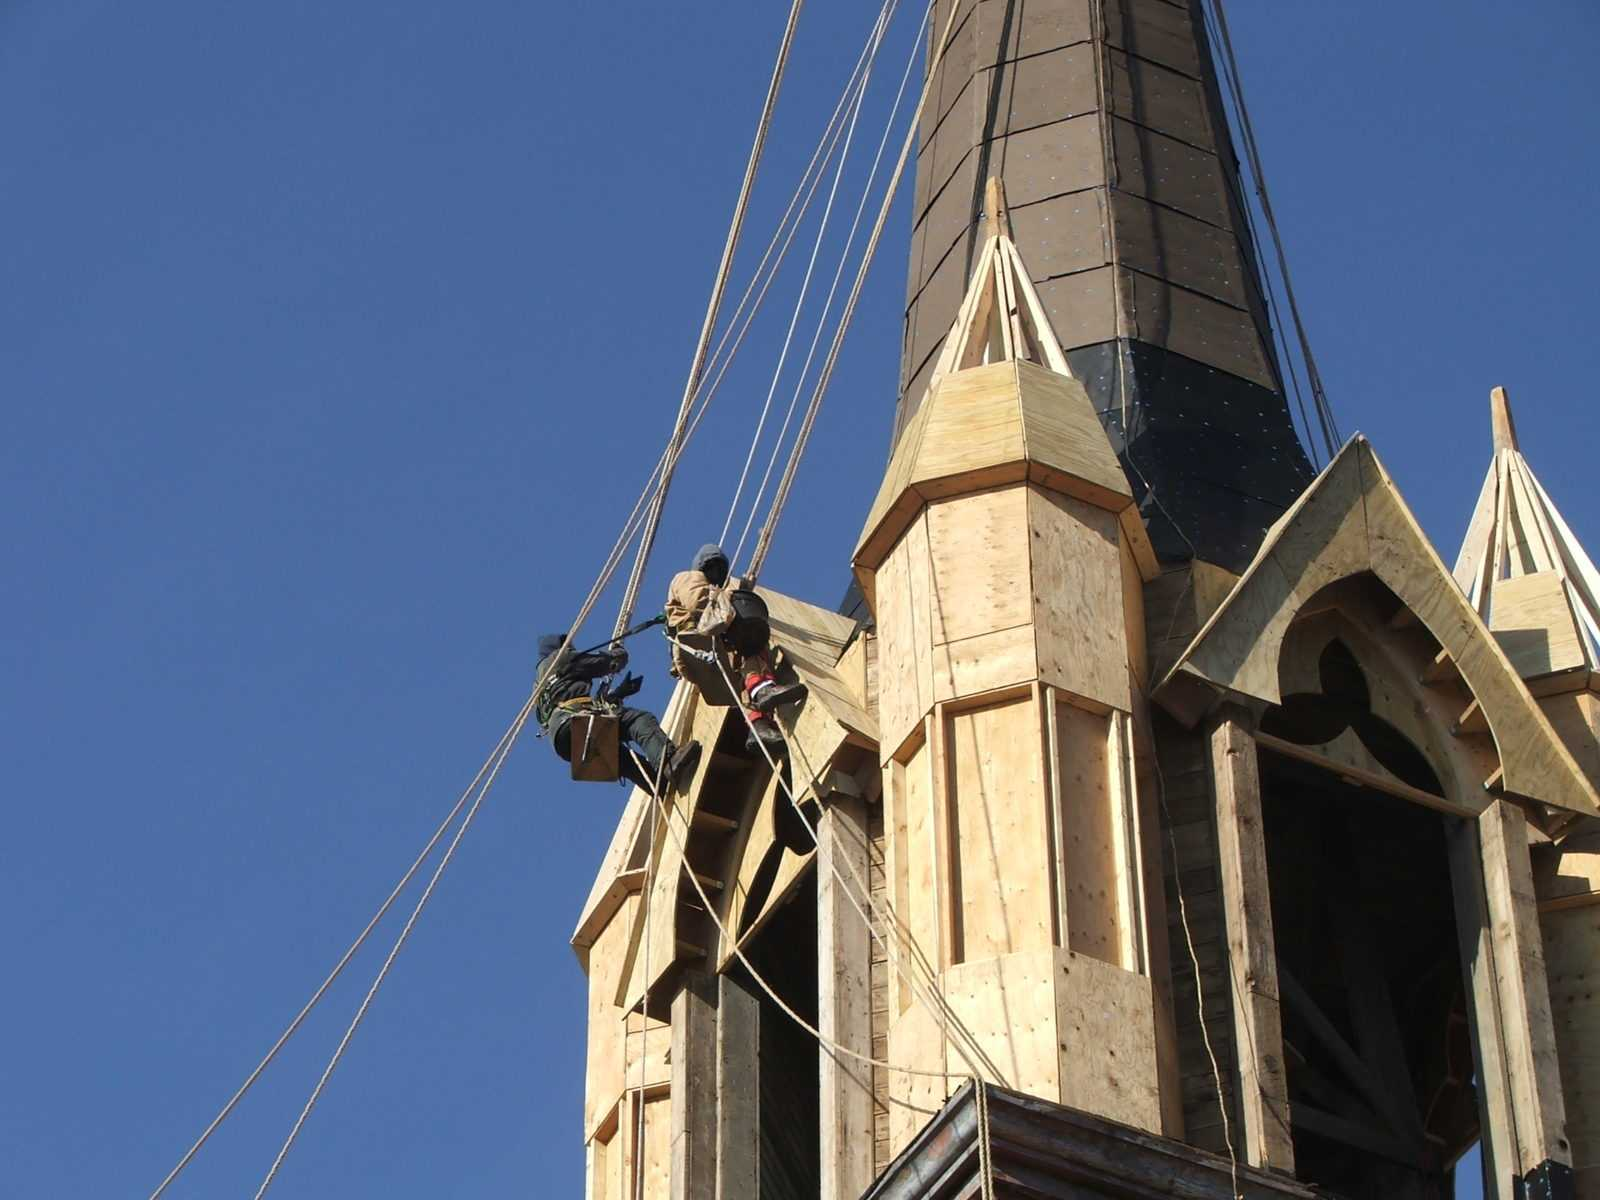 Coplete steeple restoration